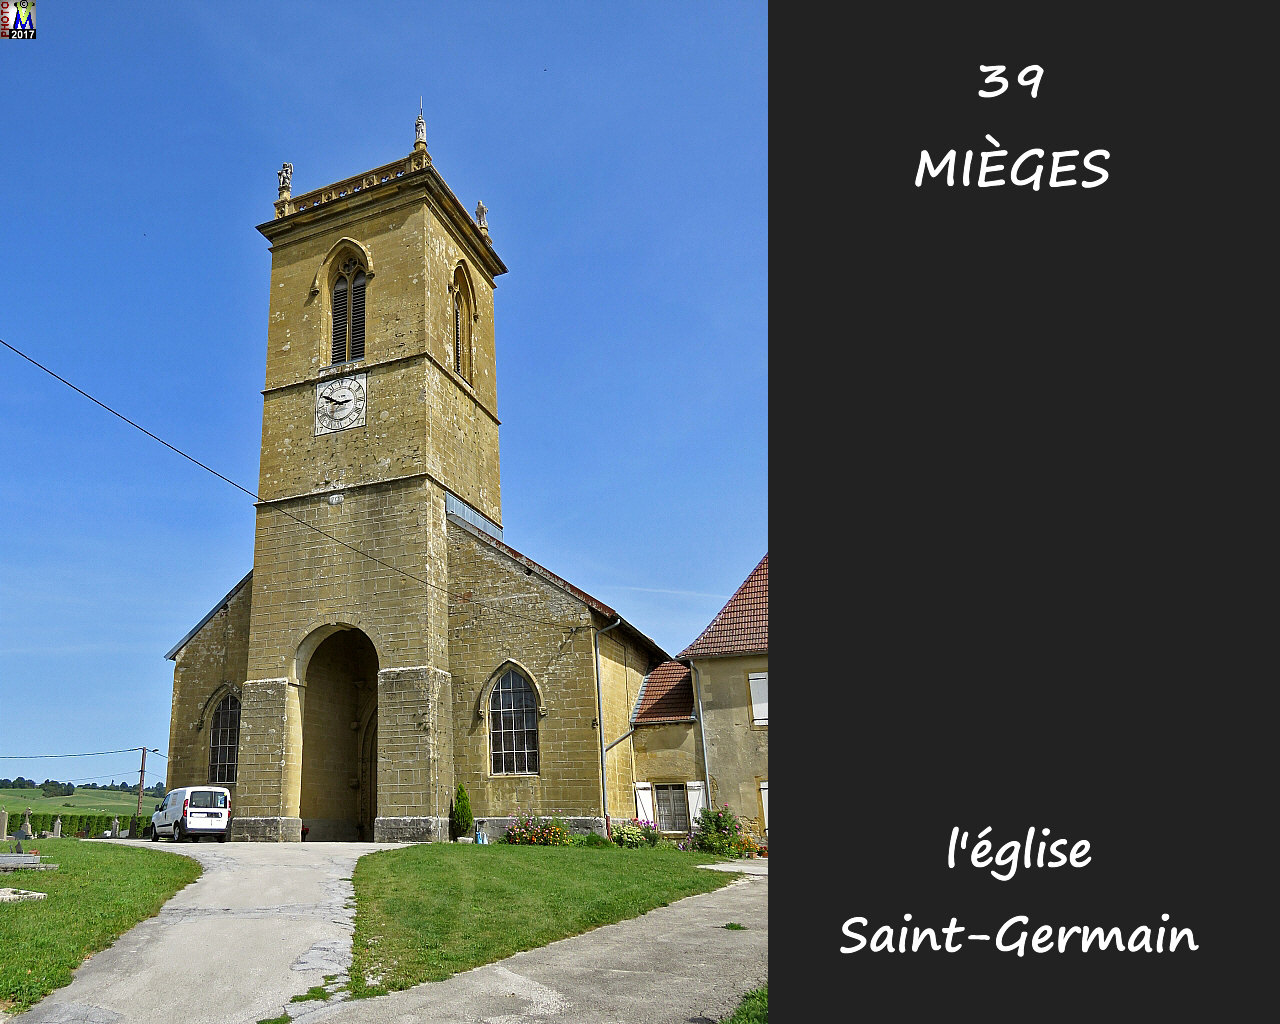 39MIEGES_eglise_100.jpg